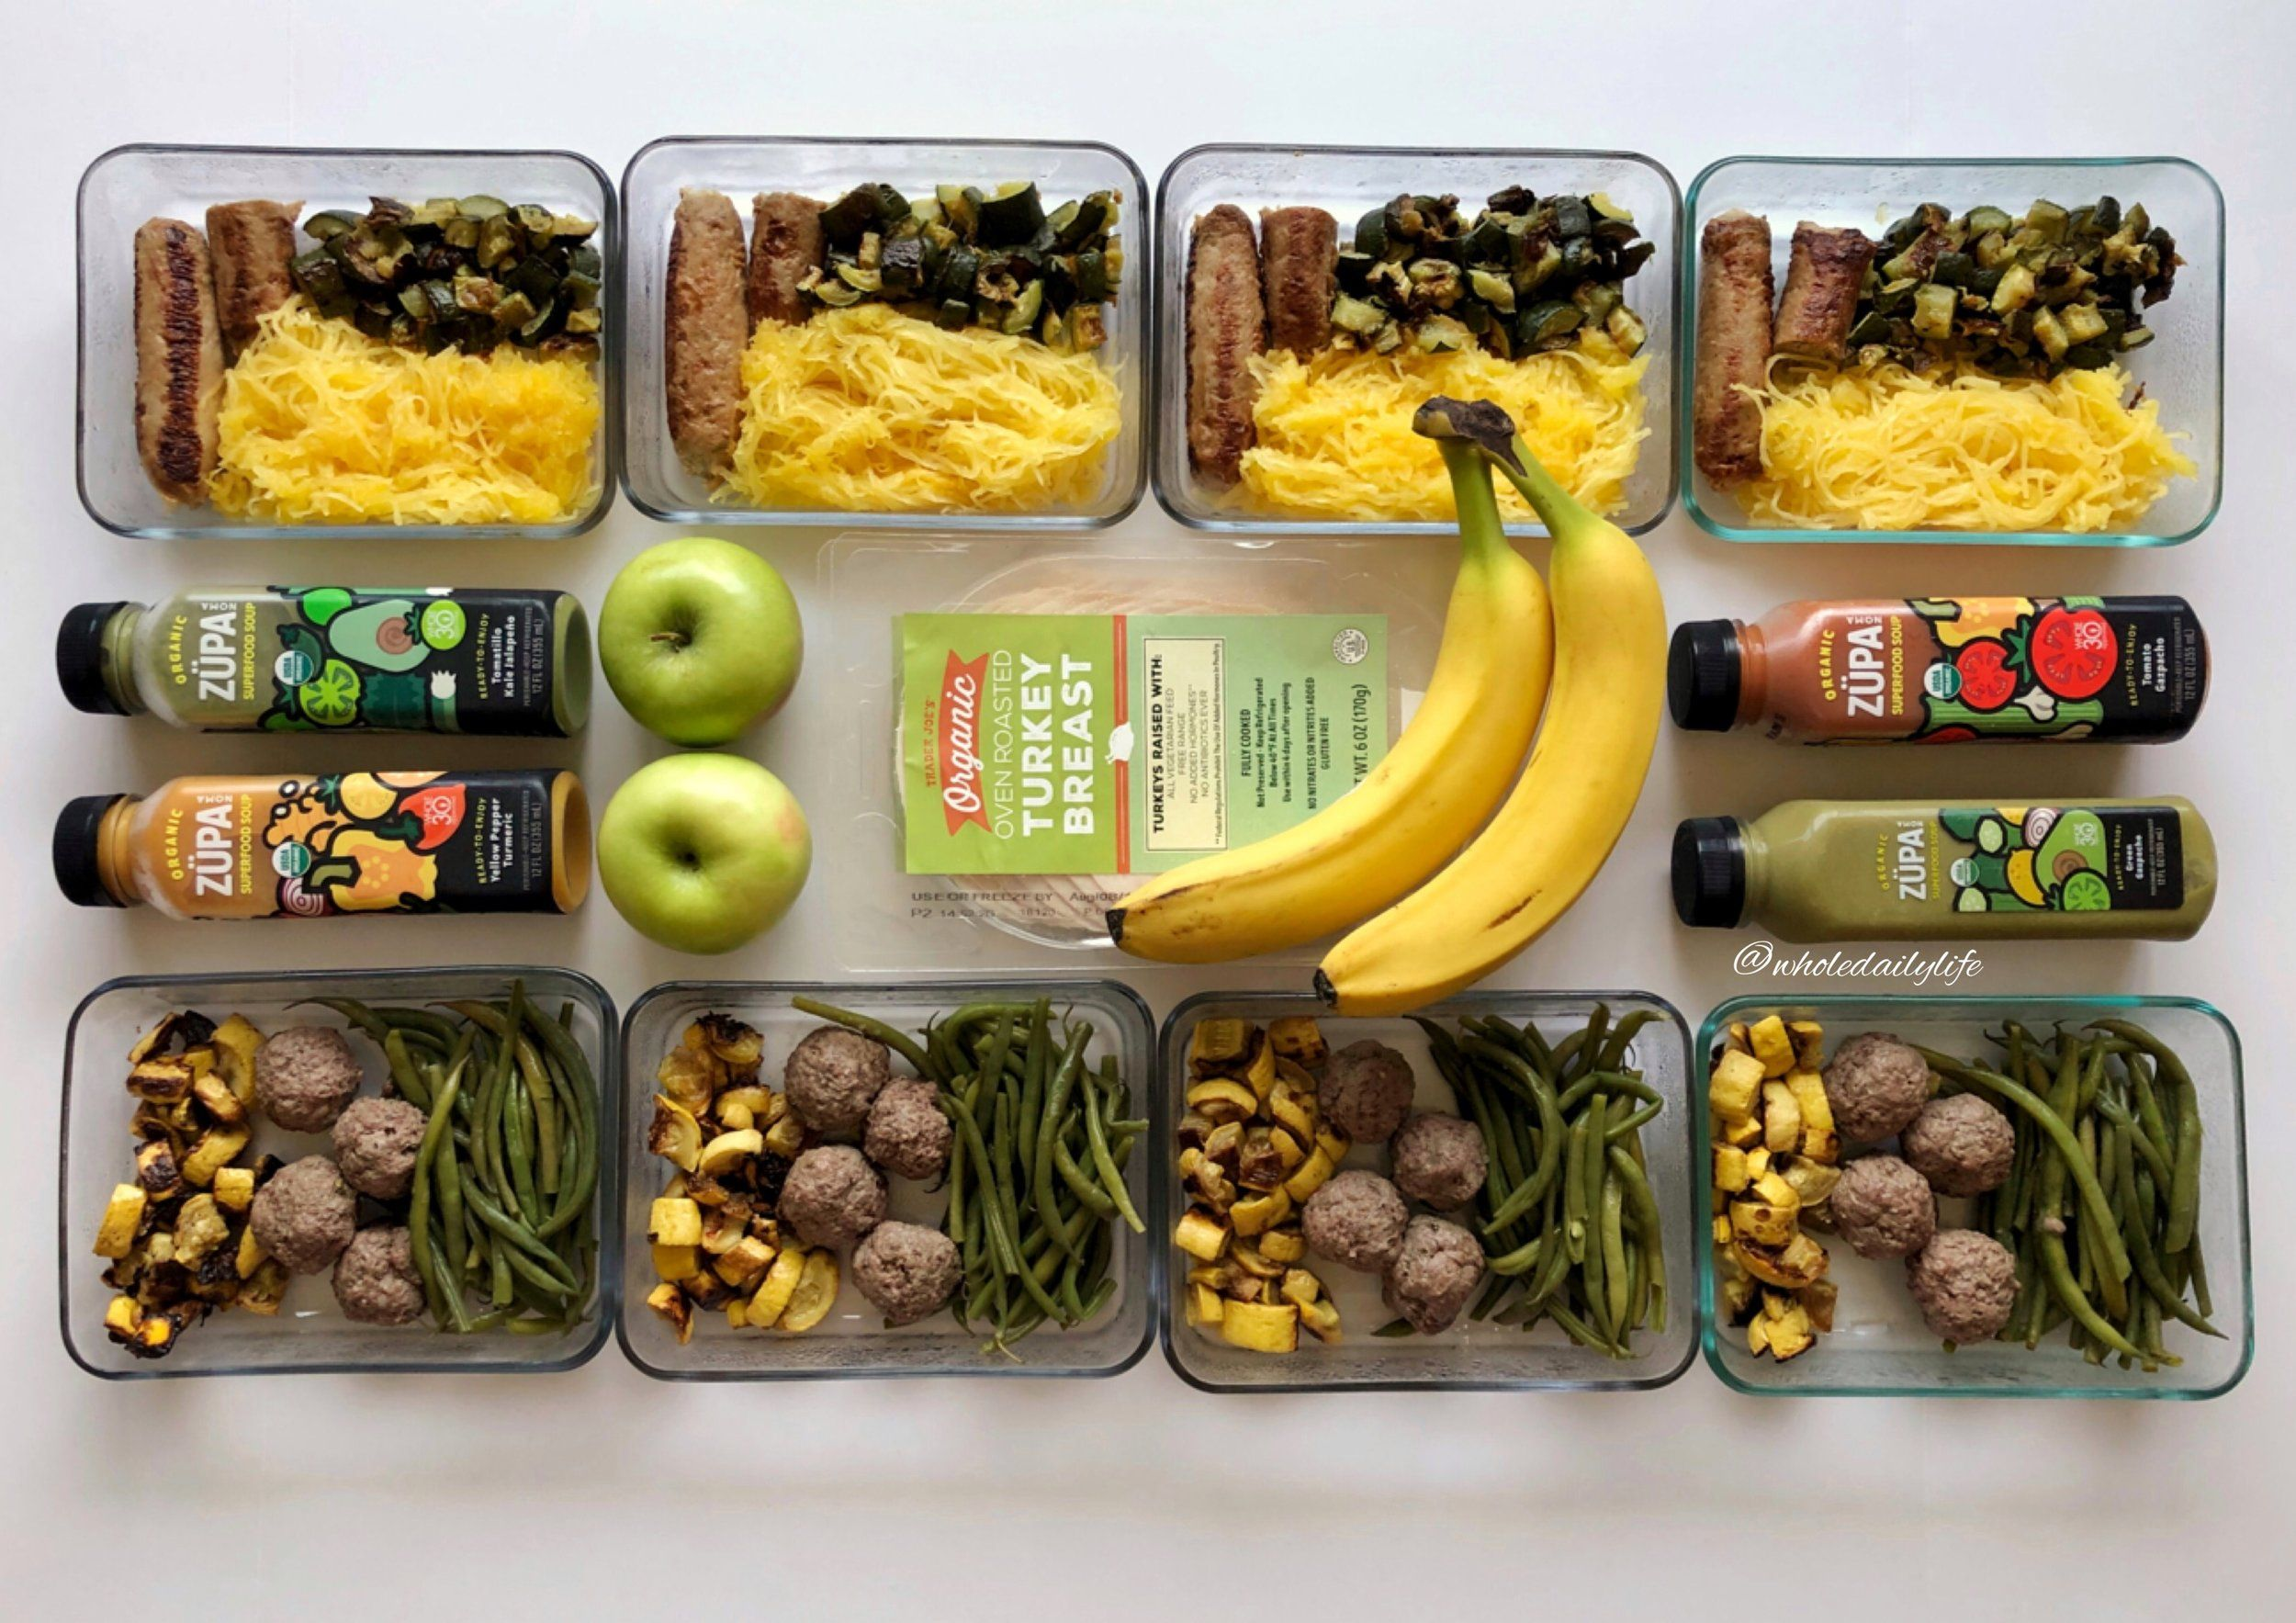 My top tip for simple whole30 meal prep whole daily life